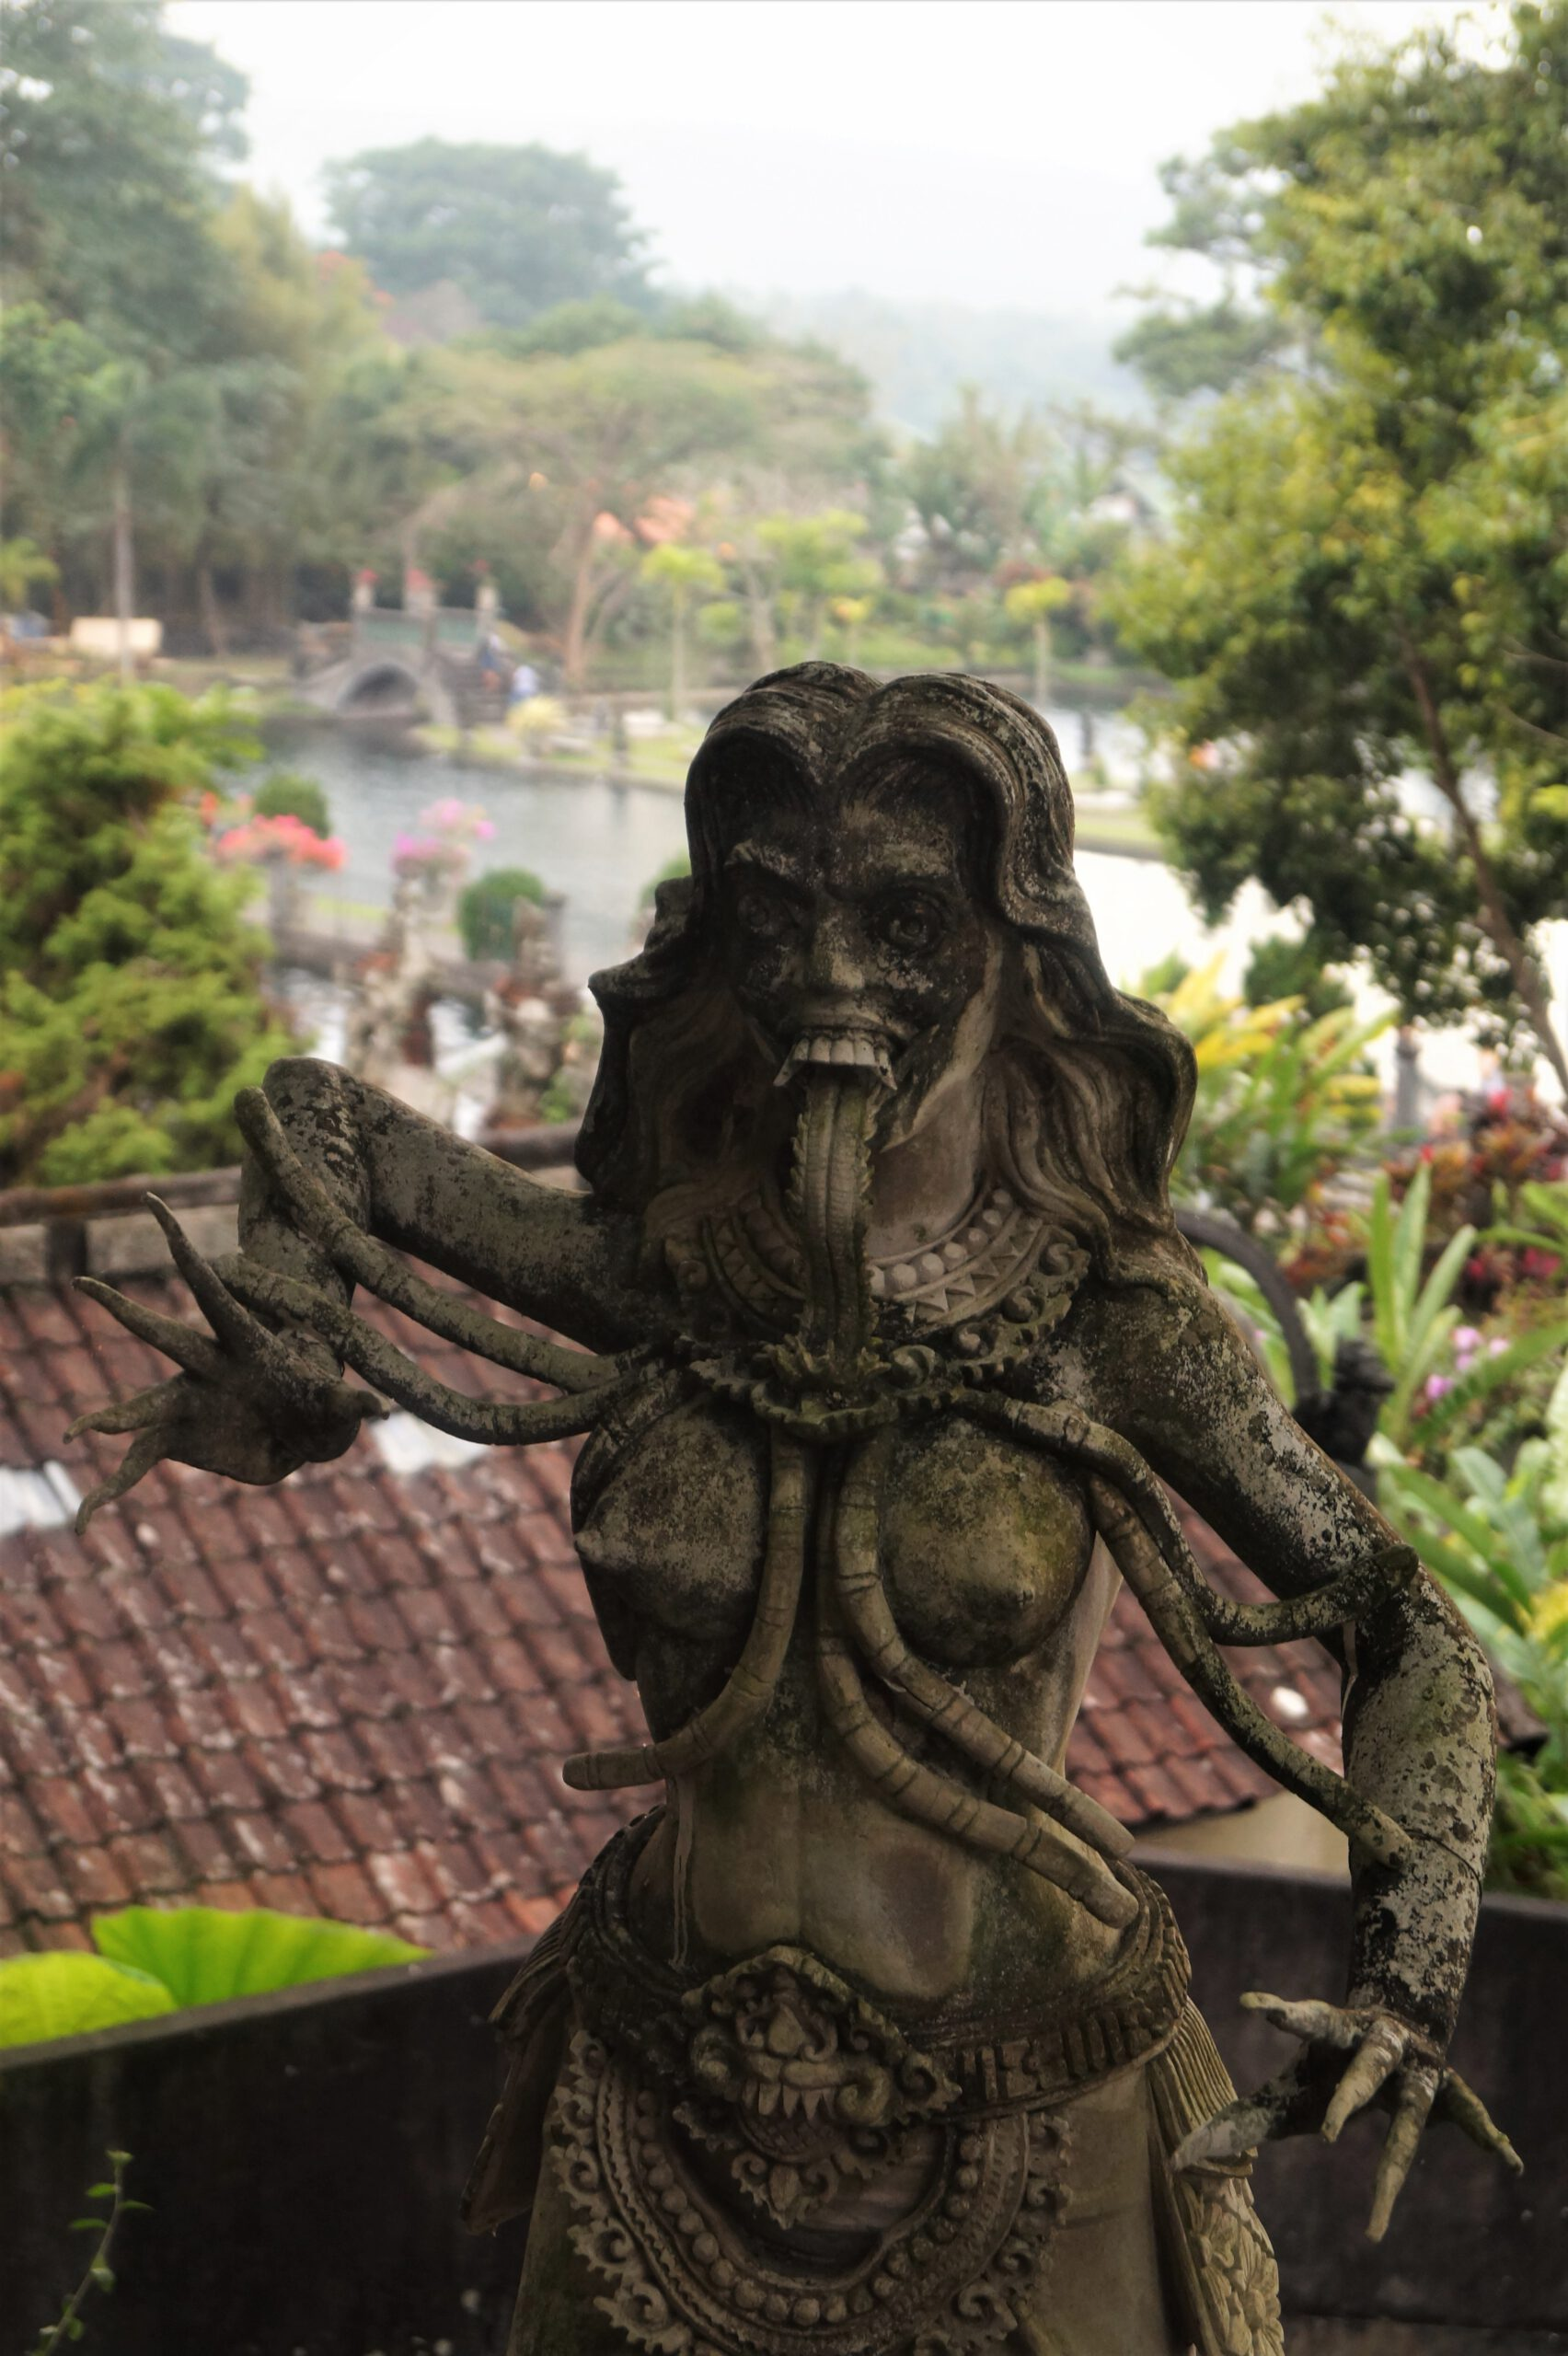 Bali Qué ver Amed Parque Tirta Gangga scaled - Travel guide to Amed and Mount Agung; the treasure of Bali